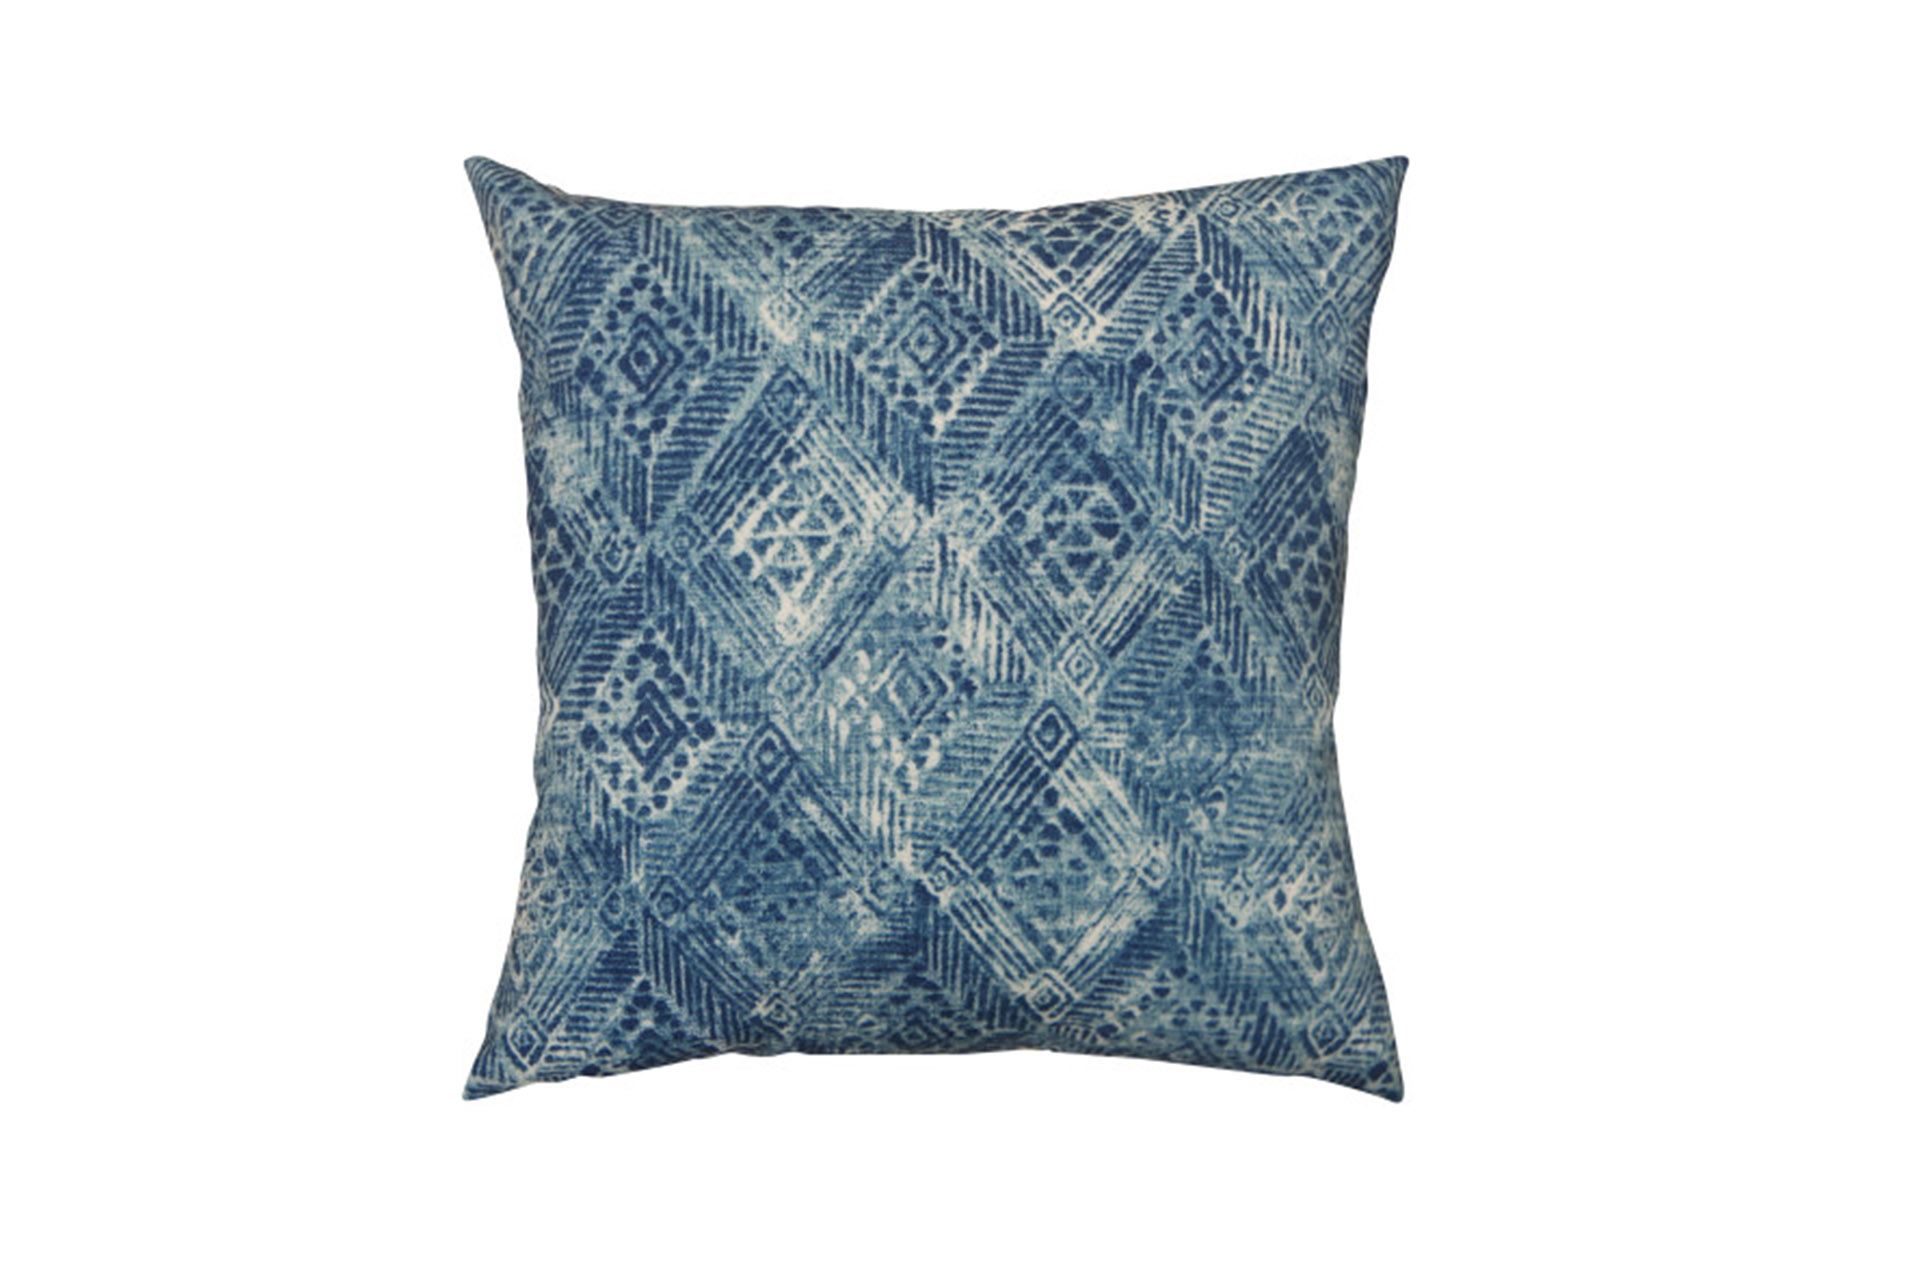 Outdoor Accent Pillow-summer Ikat Indigo 18x18 Living Spaces